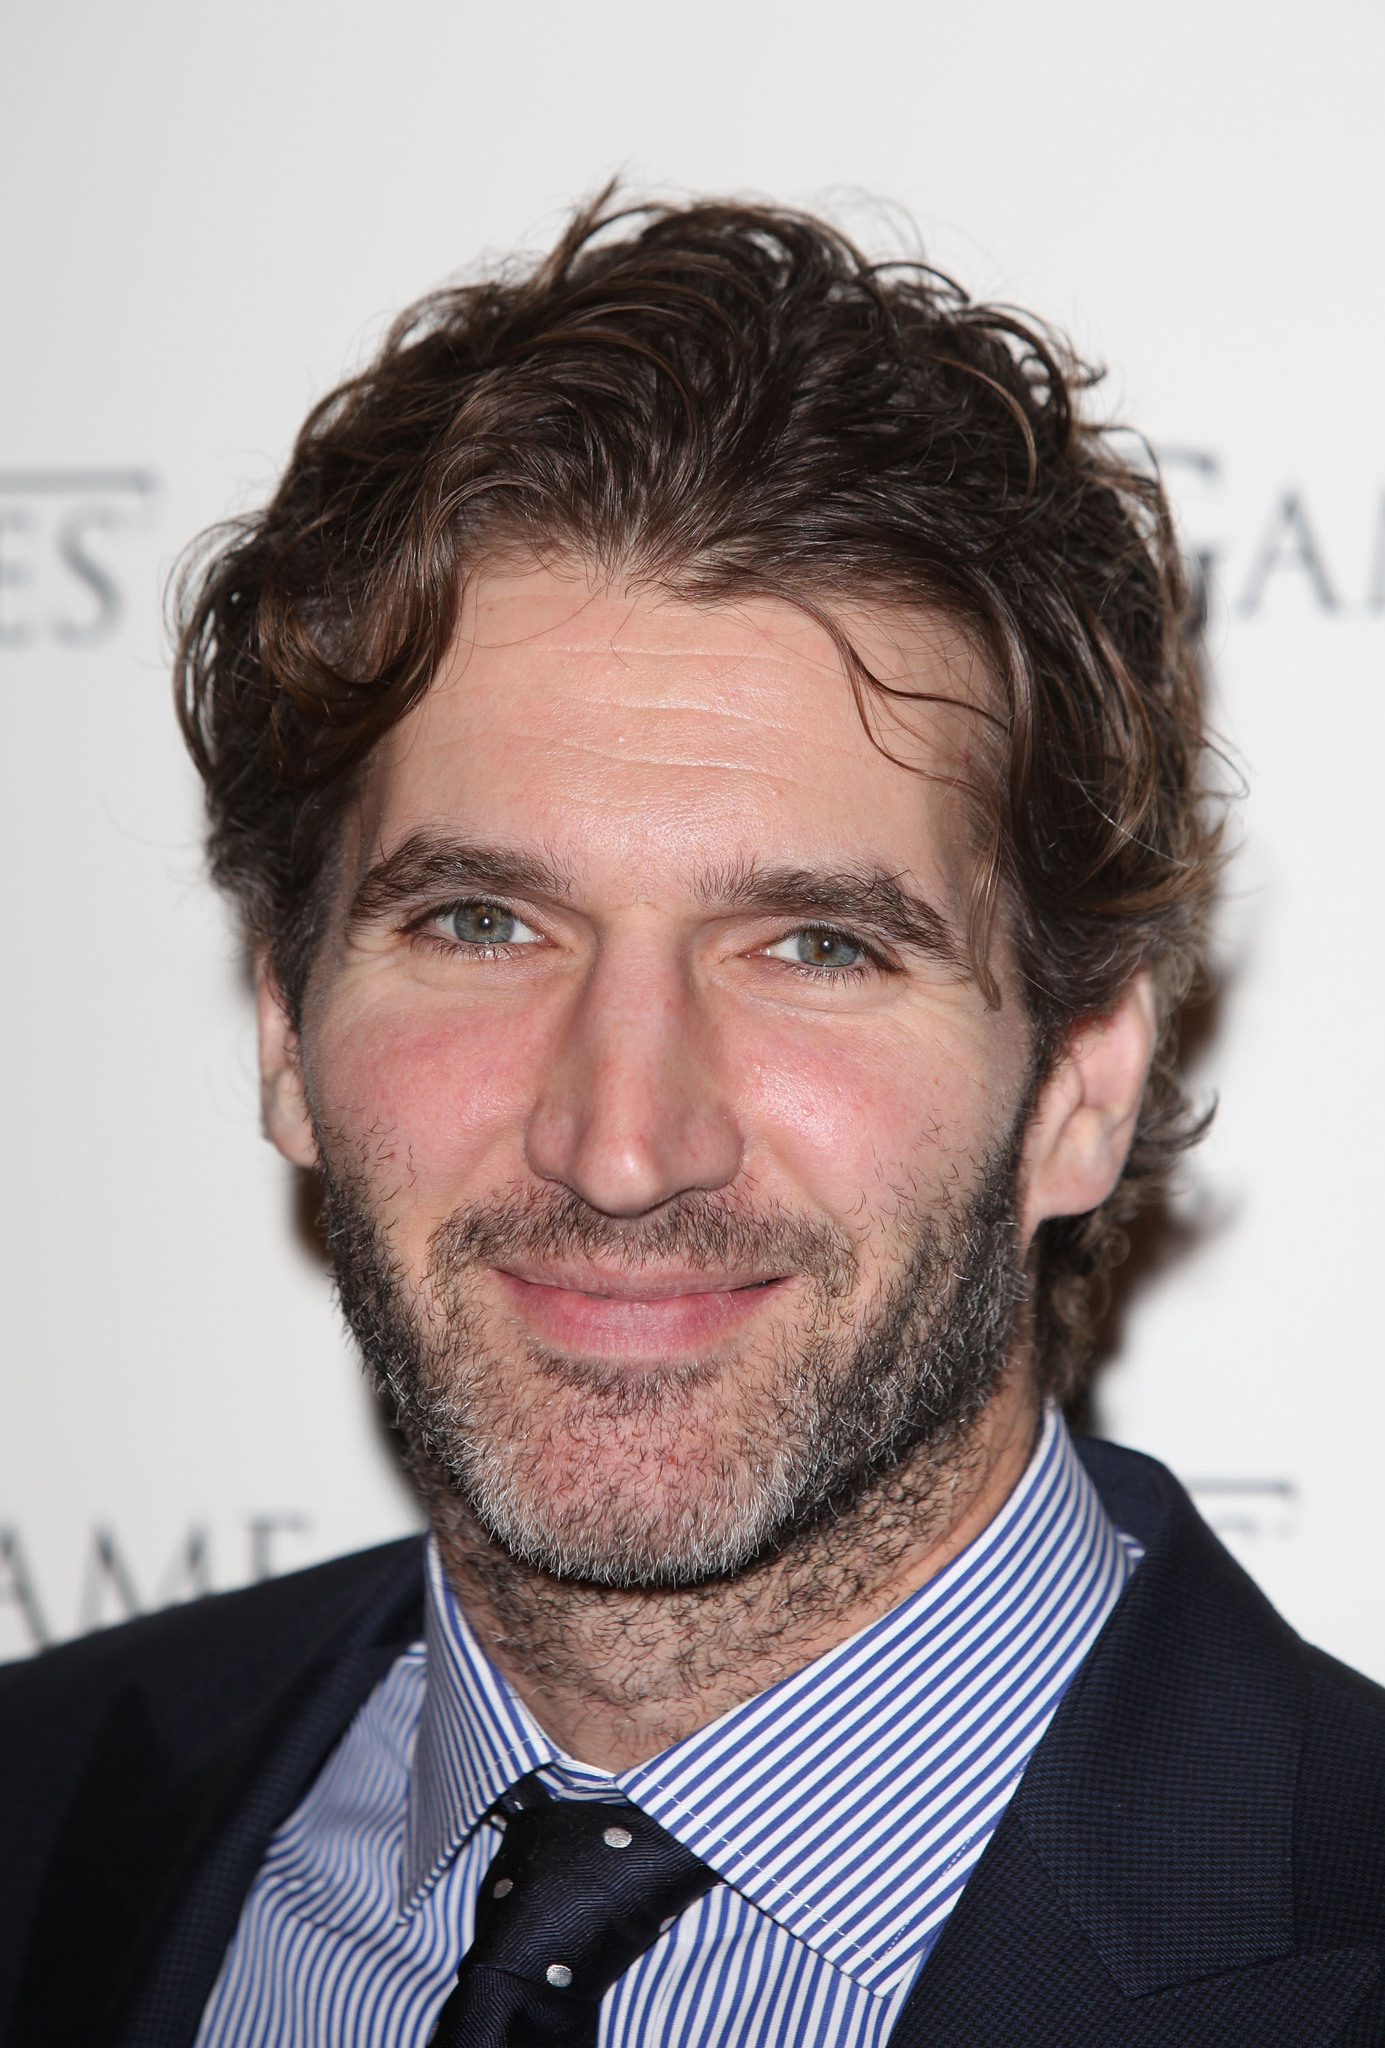 The 50-year old son of father (?) and mother(?) David Benioff in 2020 photo. David Benioff earned a  million dollar salary - leaving the net worth at  million in 2020